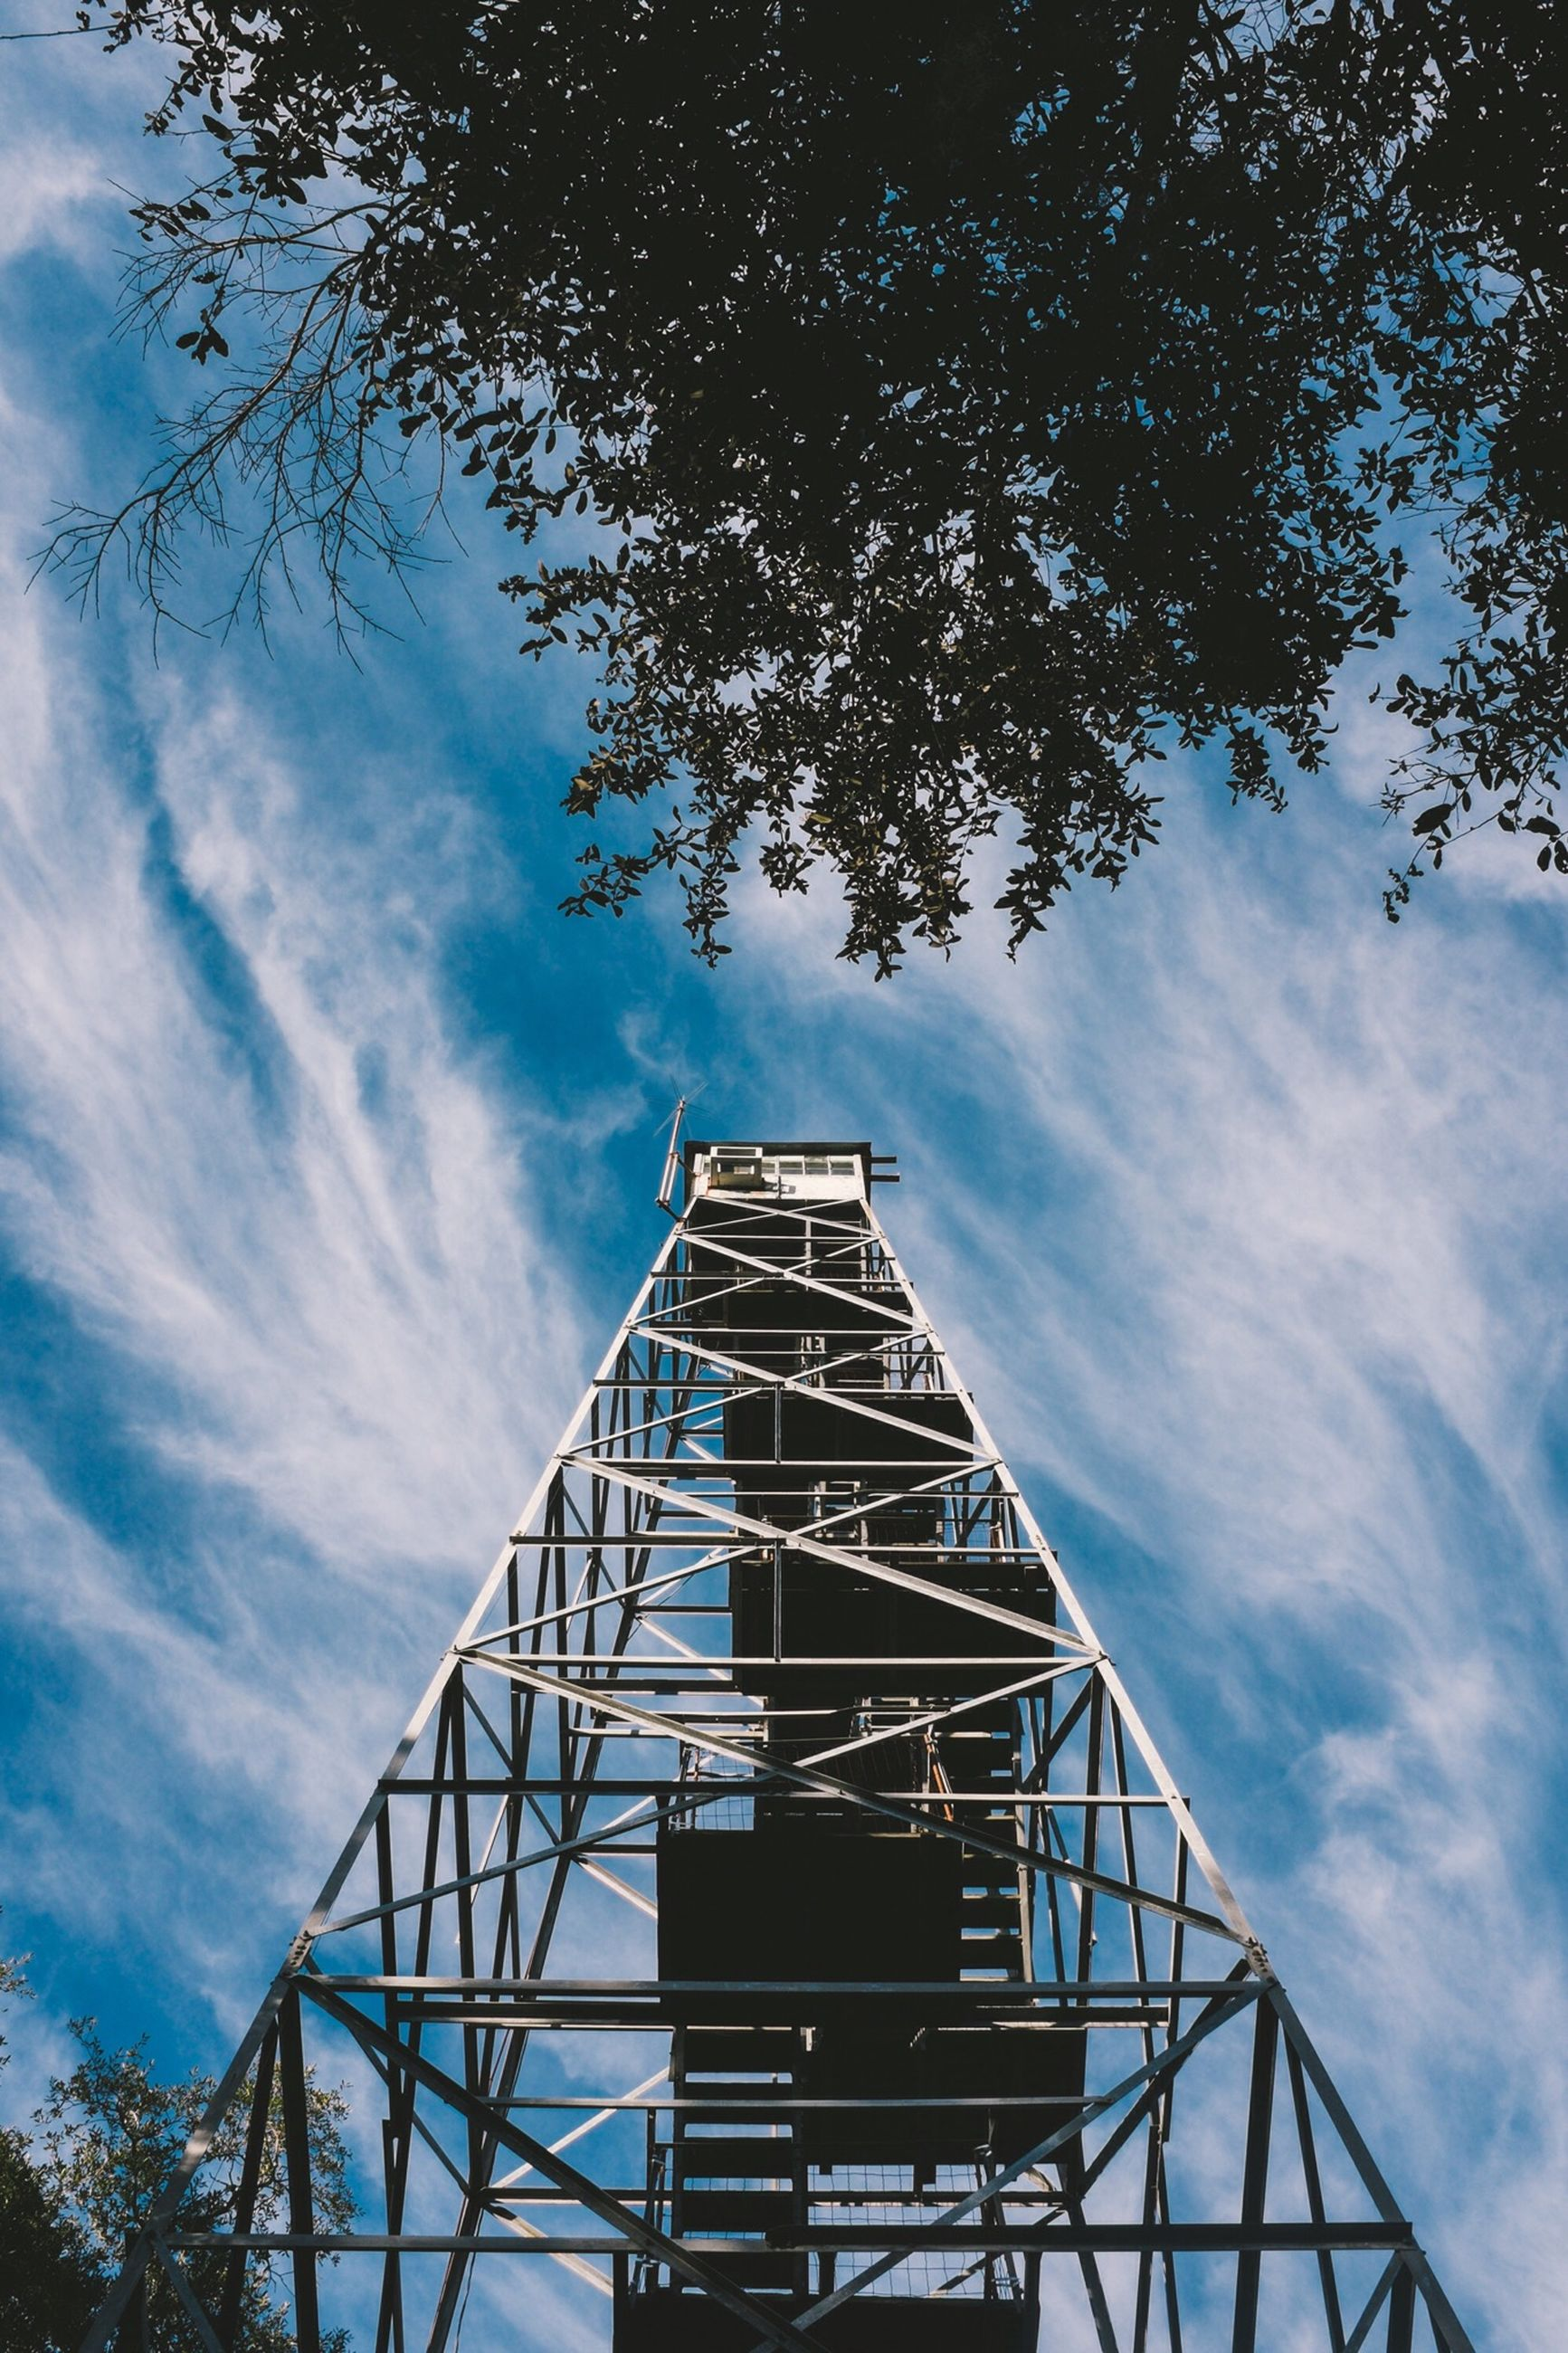 low angle view, sky, cloud - sky, built structure, metal, architecture, tree, cloudy, cloud, tall - high, metallic, tower, day, blue, outdoors, no people, grid, directly below, tall, building exterior